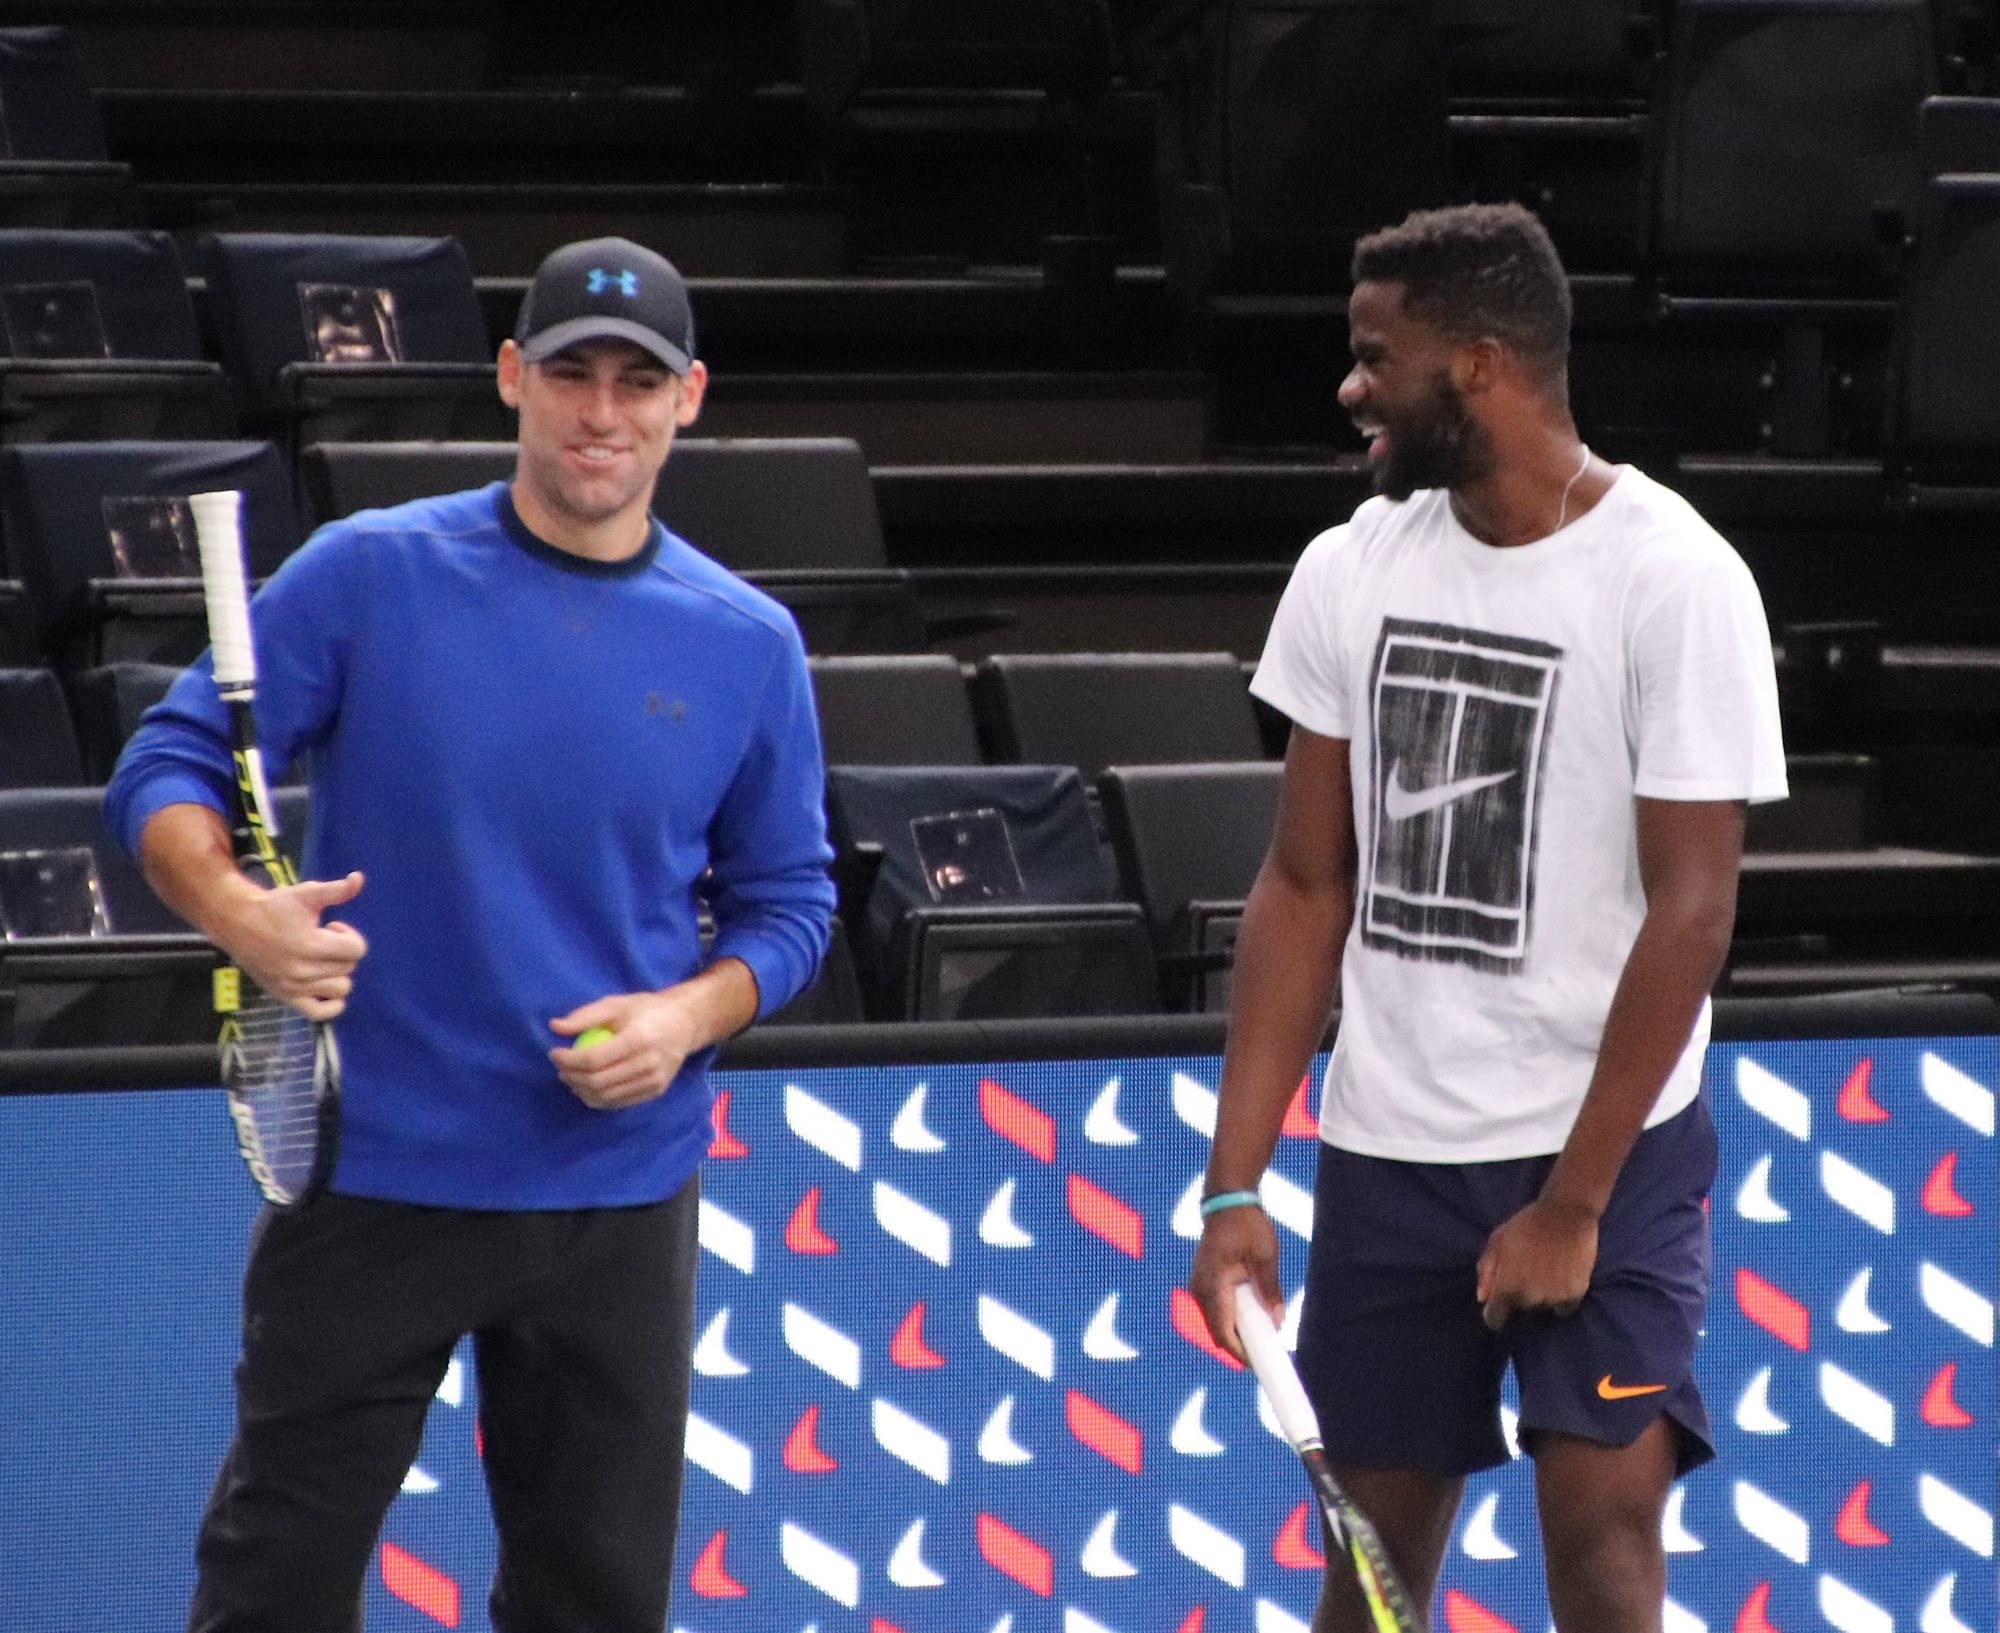 Rolex Paris Masters warm-up session photos